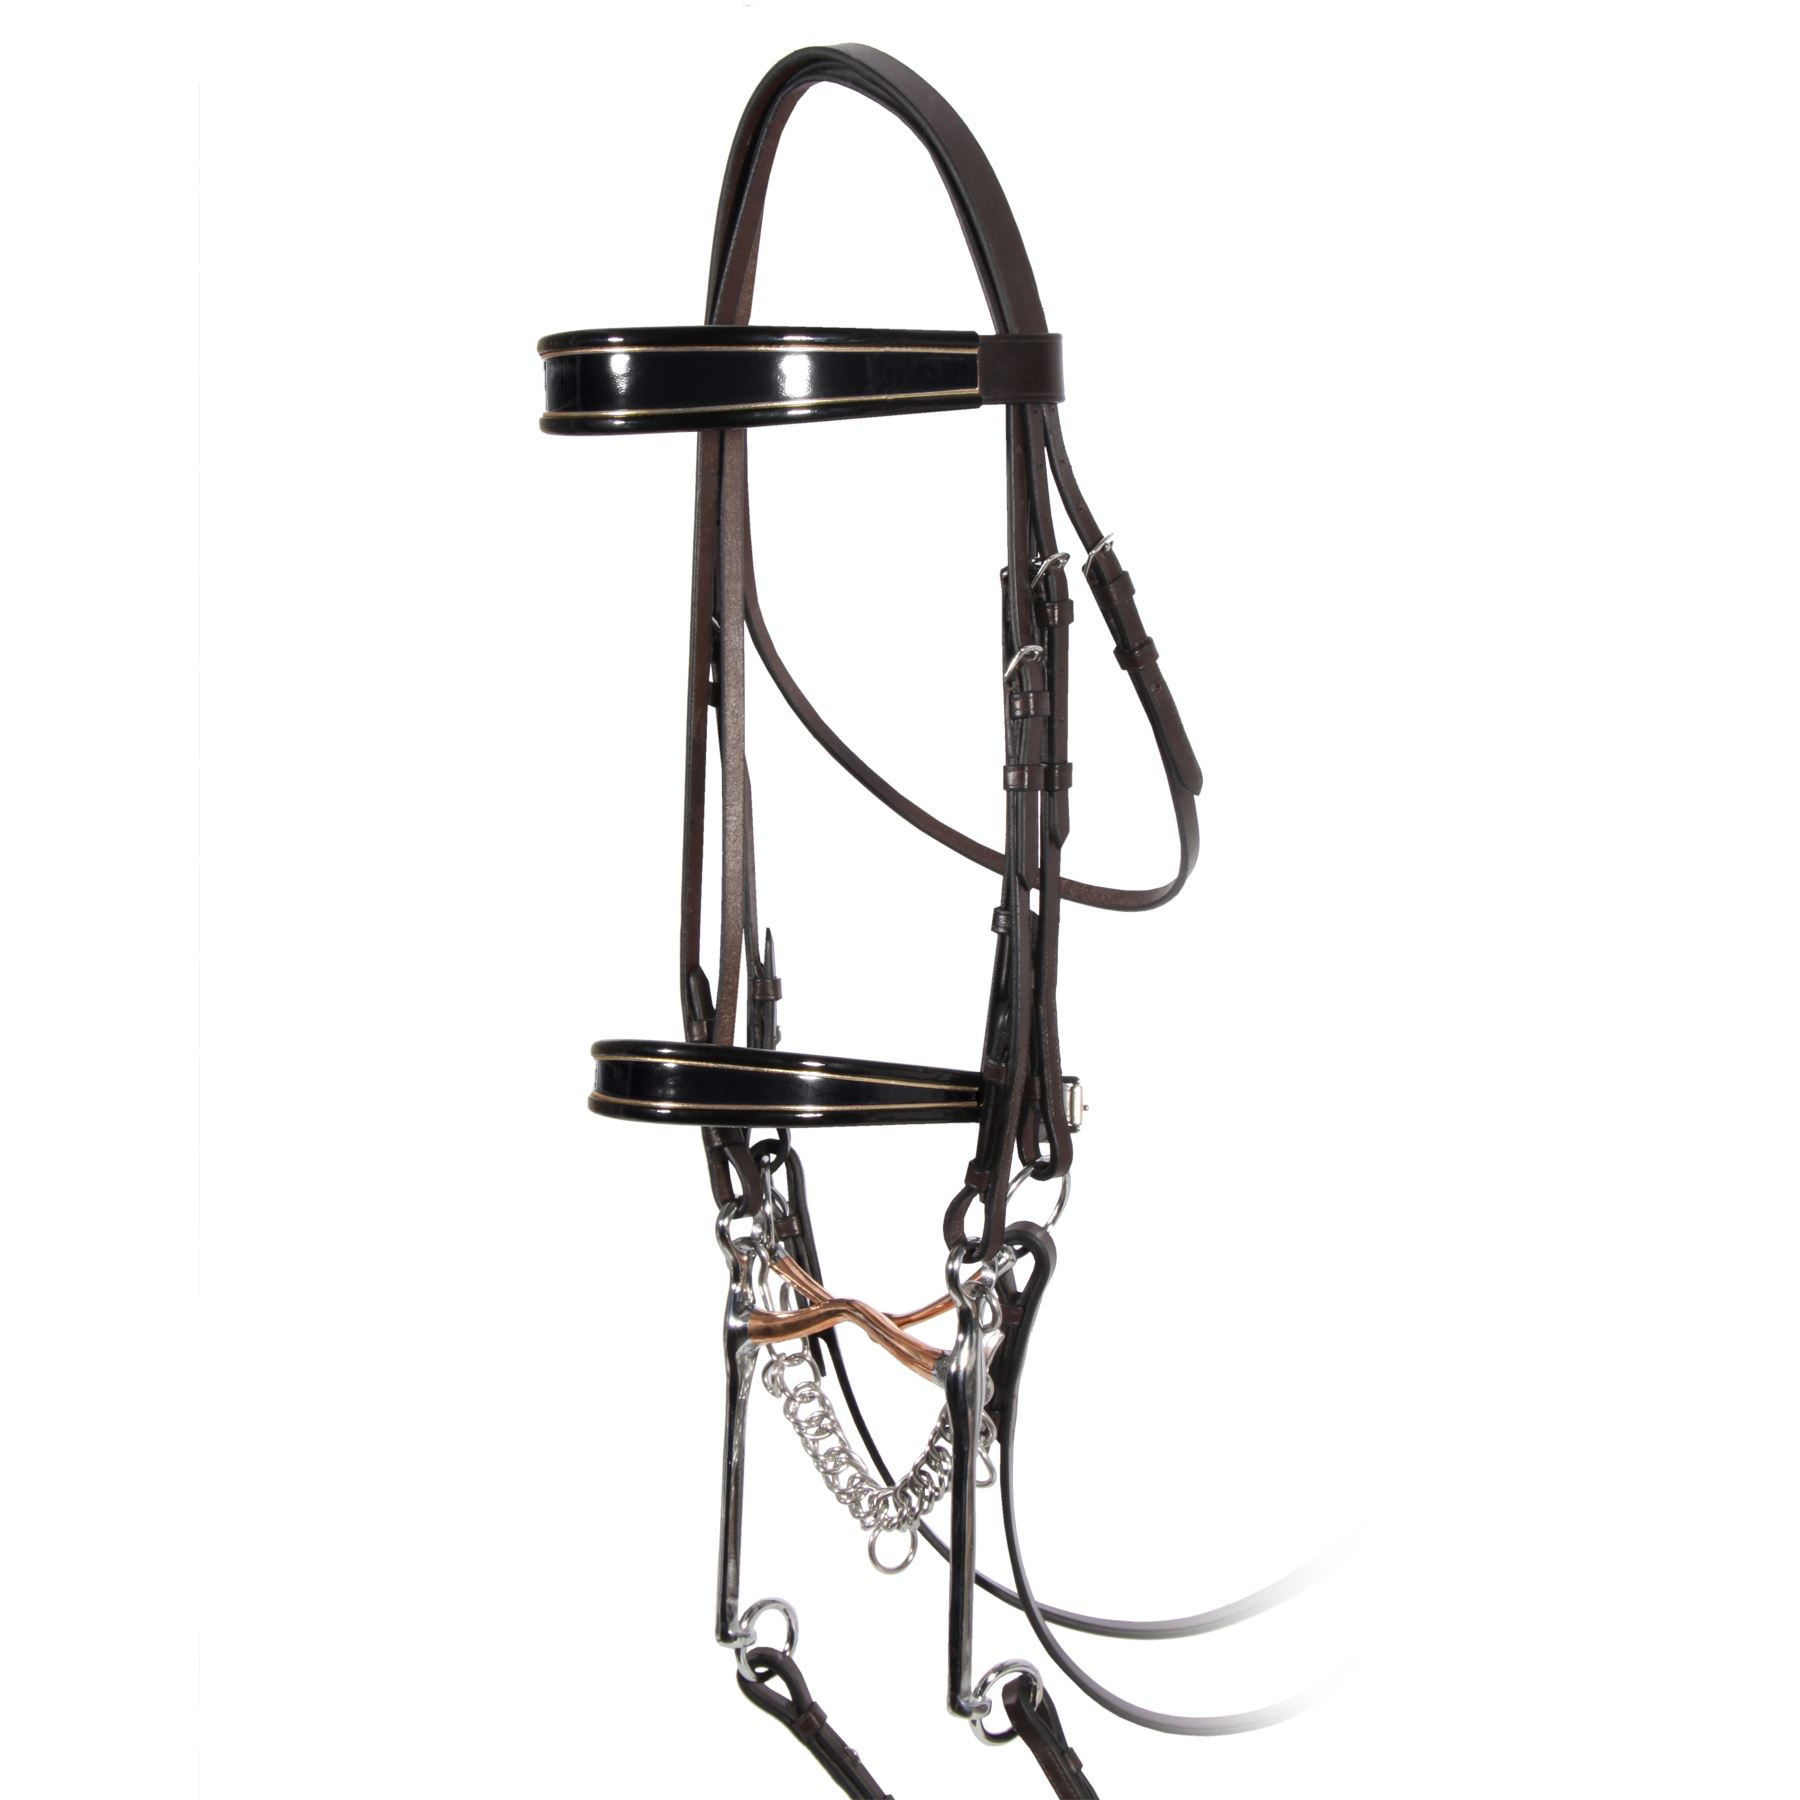 Premier Show Bridle In Saddle Seat Show Hack At